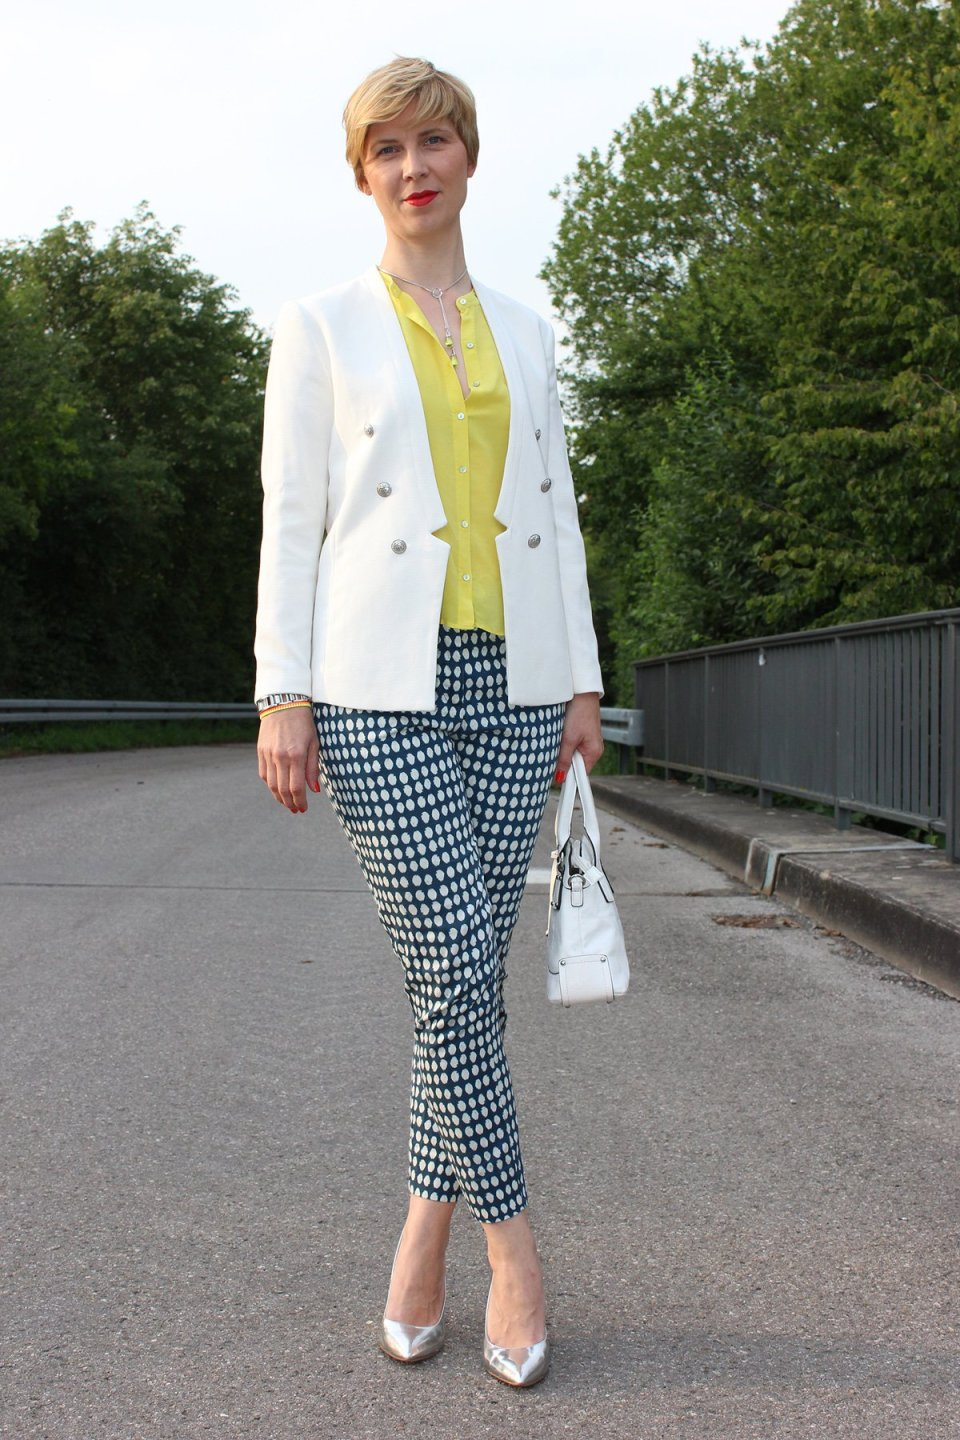 IMG_9574a_blueprintpants_dots_punkte_whiteblazer_yellowblouse_Hallbhuber_HundM_metallic_pumps